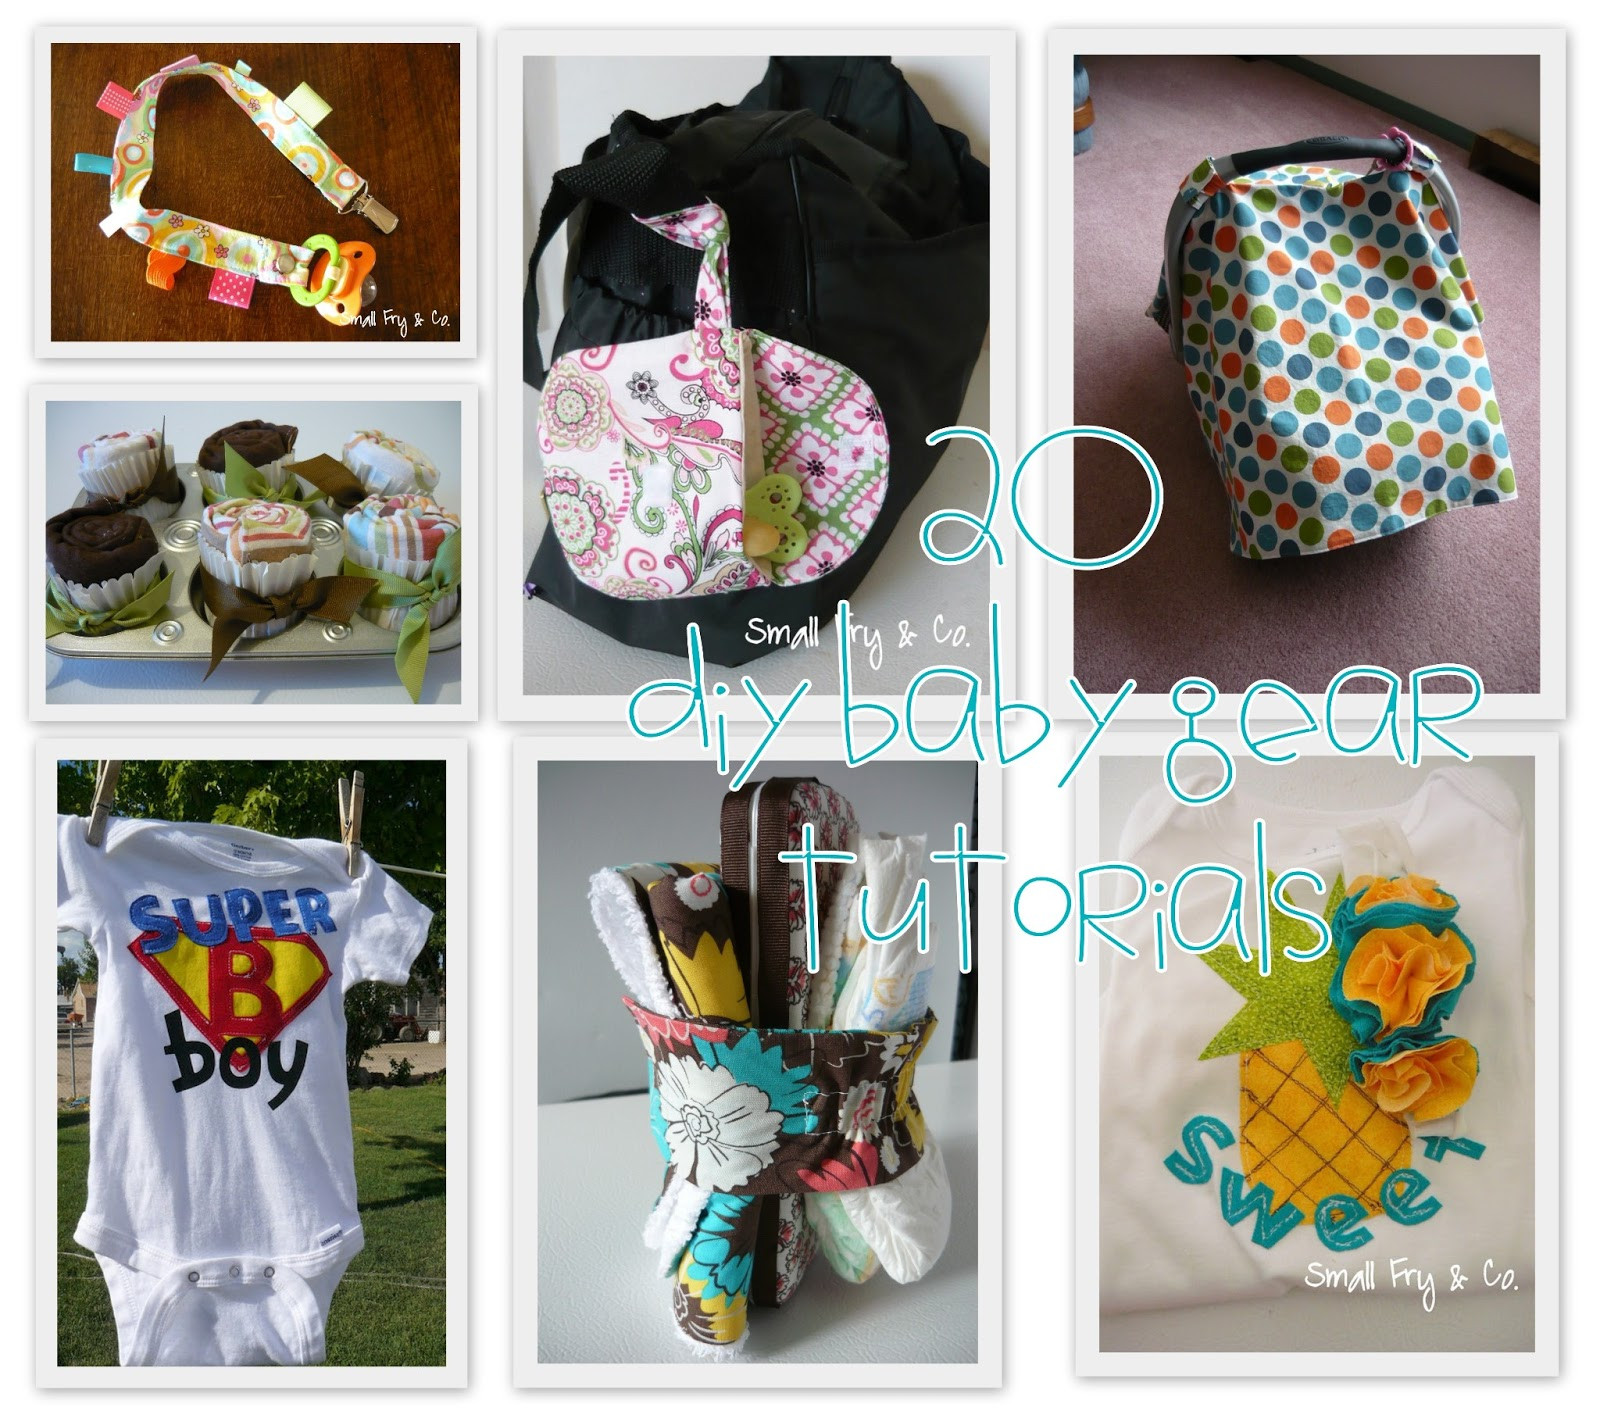 Best ideas about DIY Baby Stuff . Save or Pin Small Fry & Co 20 Great DIY Baby Gifts Now.